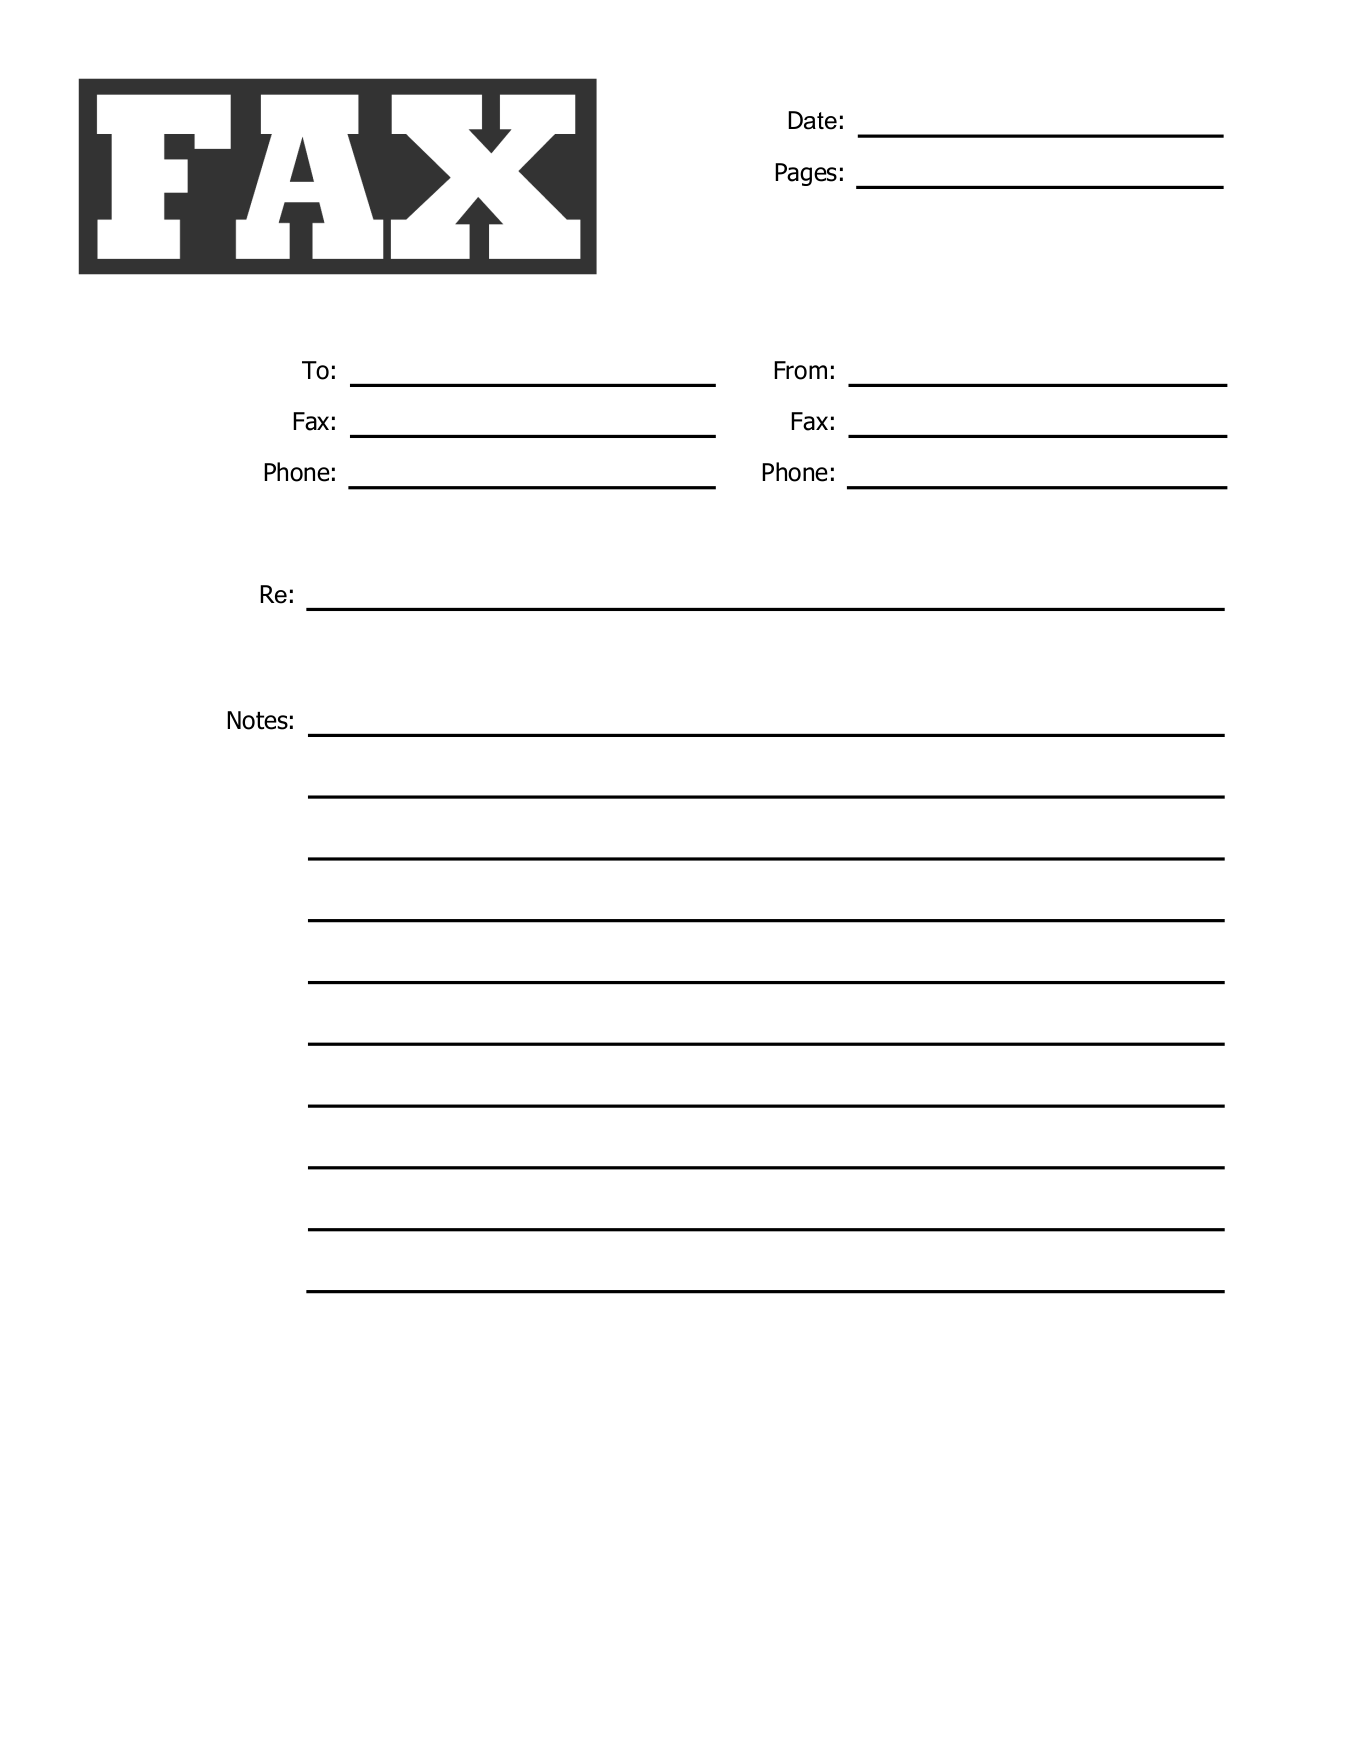 This printable was uploaded at march 09, 2021 by tamble in fax cover sheet. Free Fax Cover Sheets Faxburner